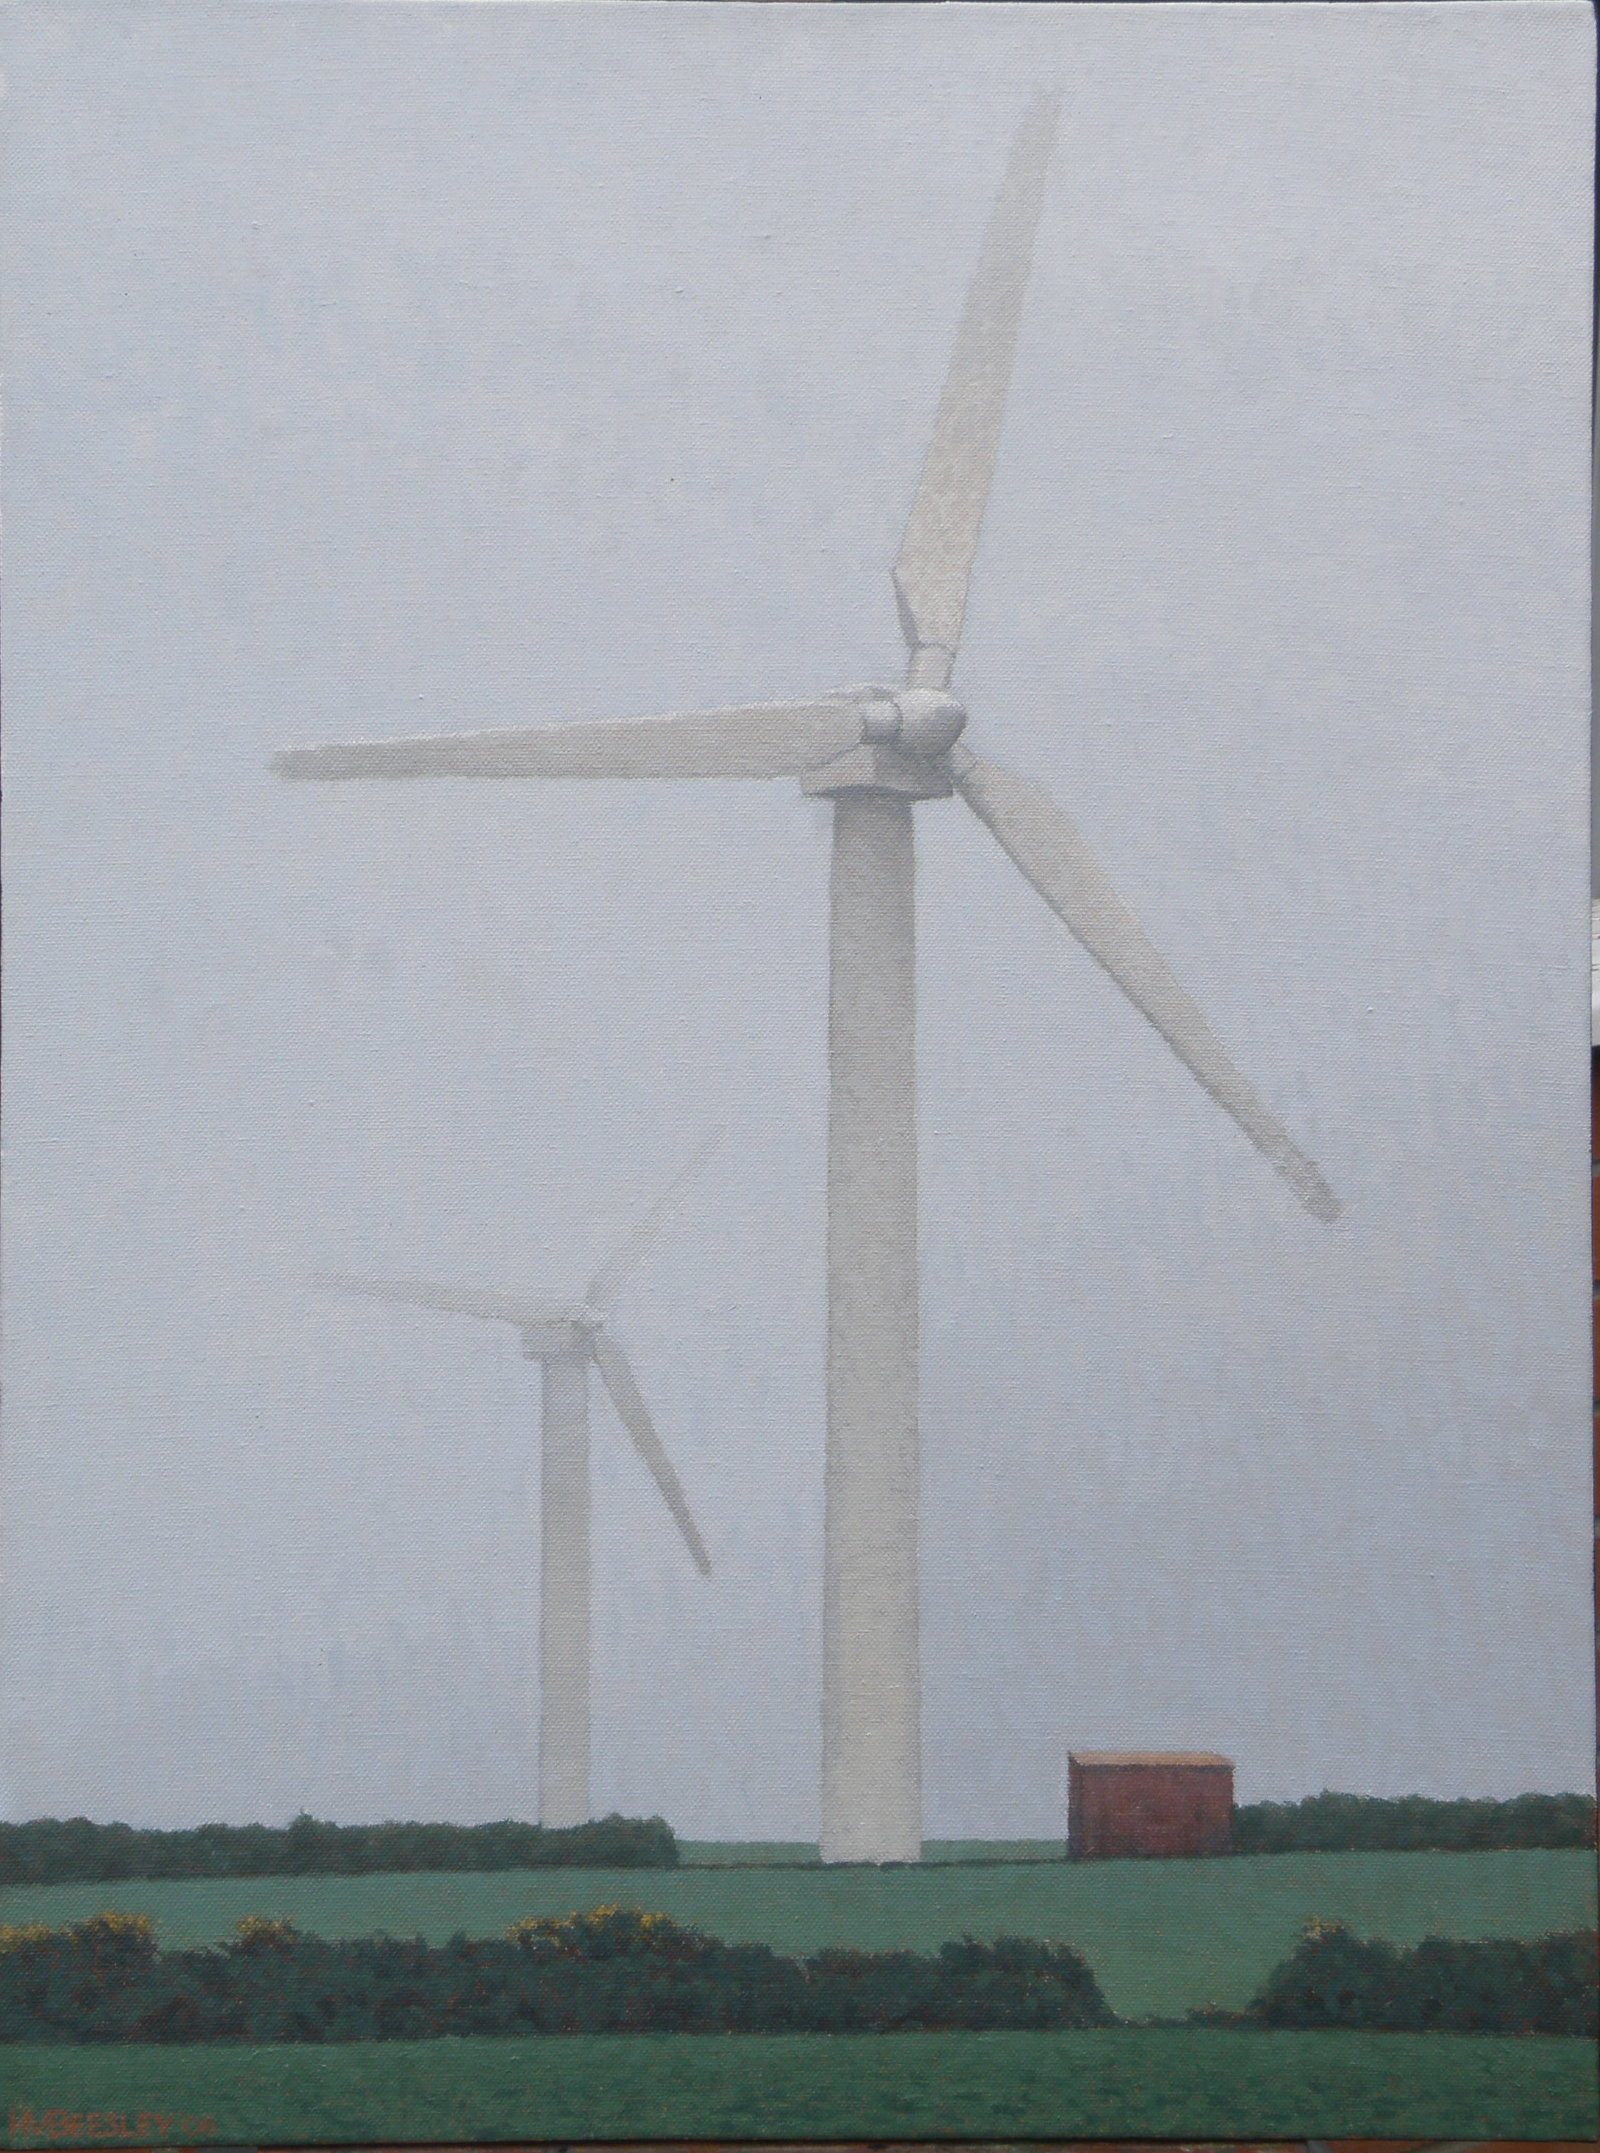 WIND TURBINE No. 22